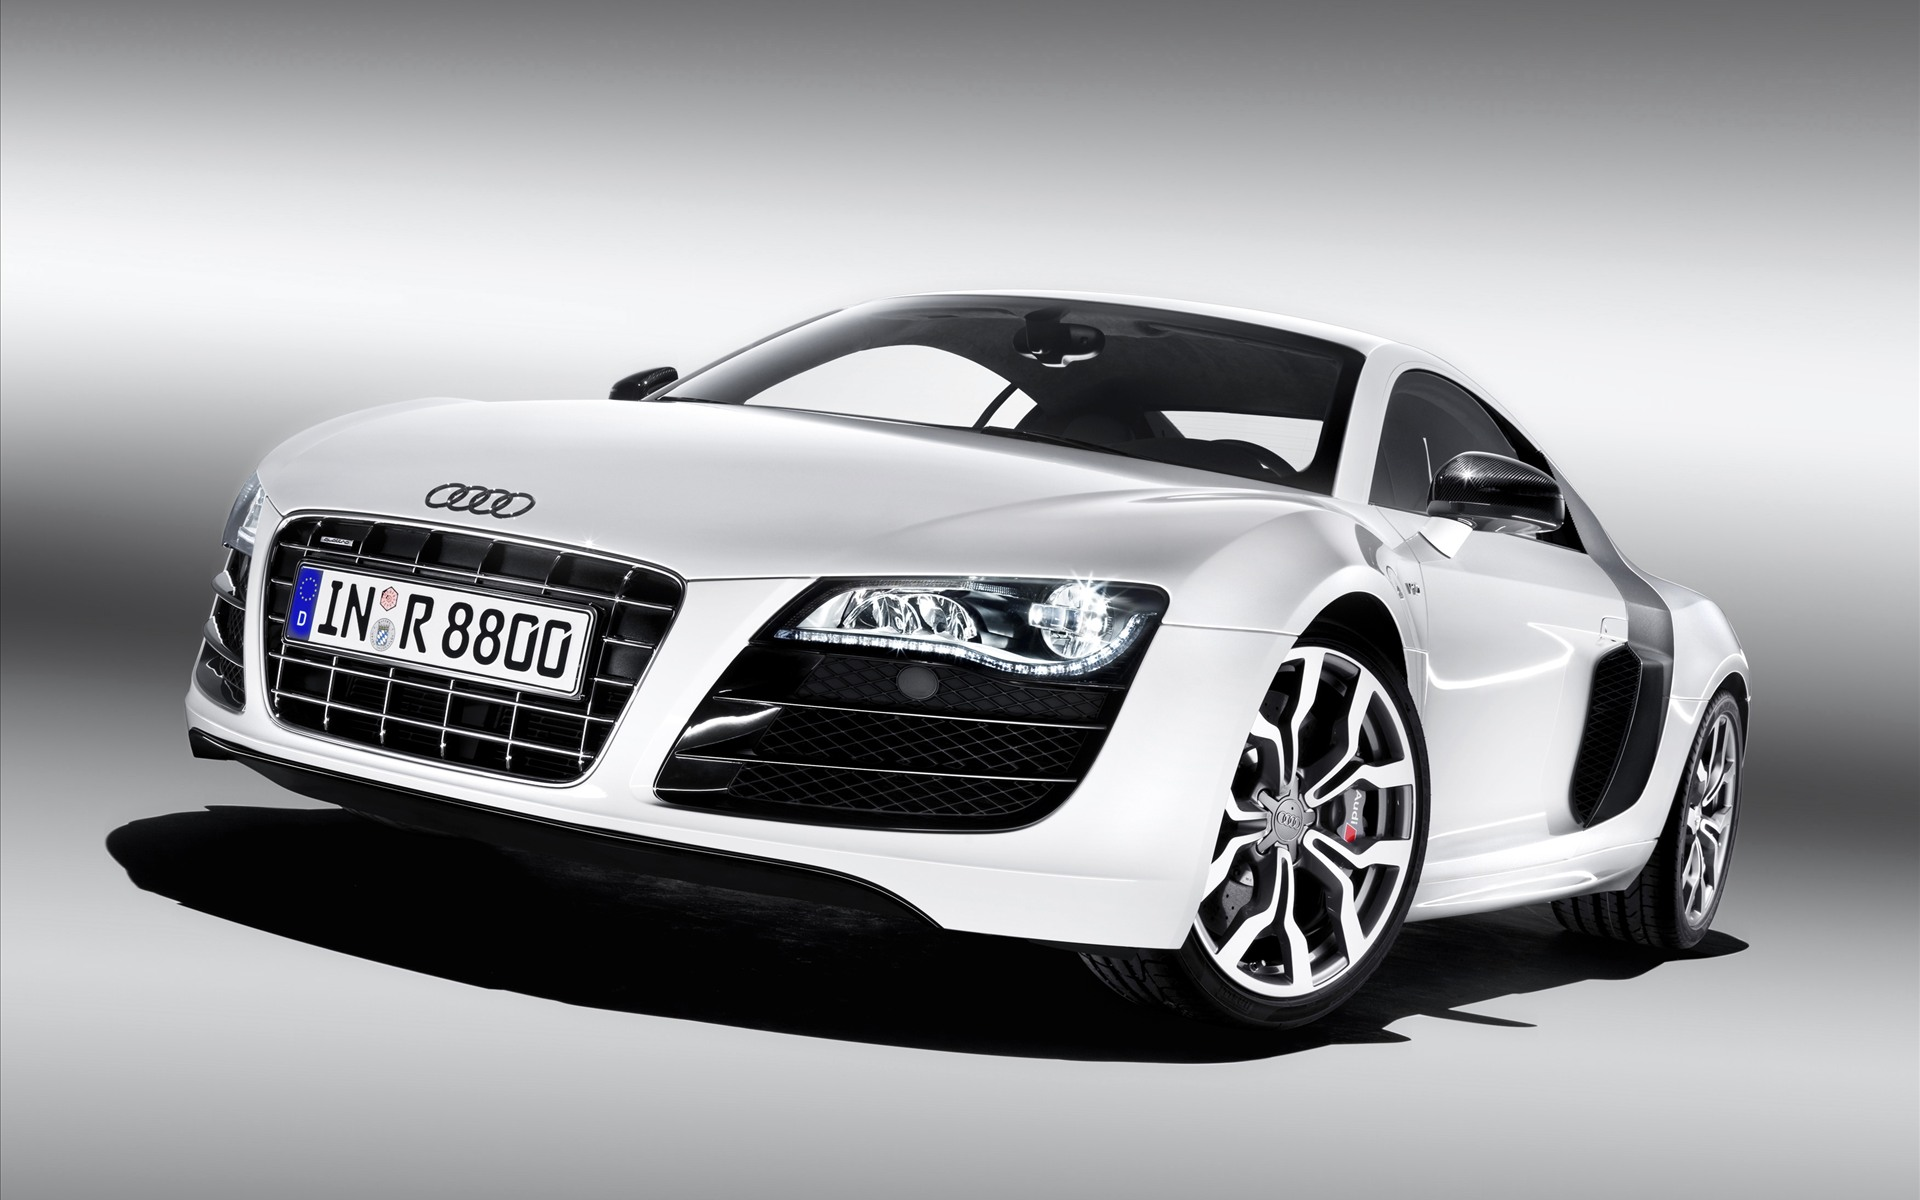 Audi-luxury-car-wallpaper-wpc5802354